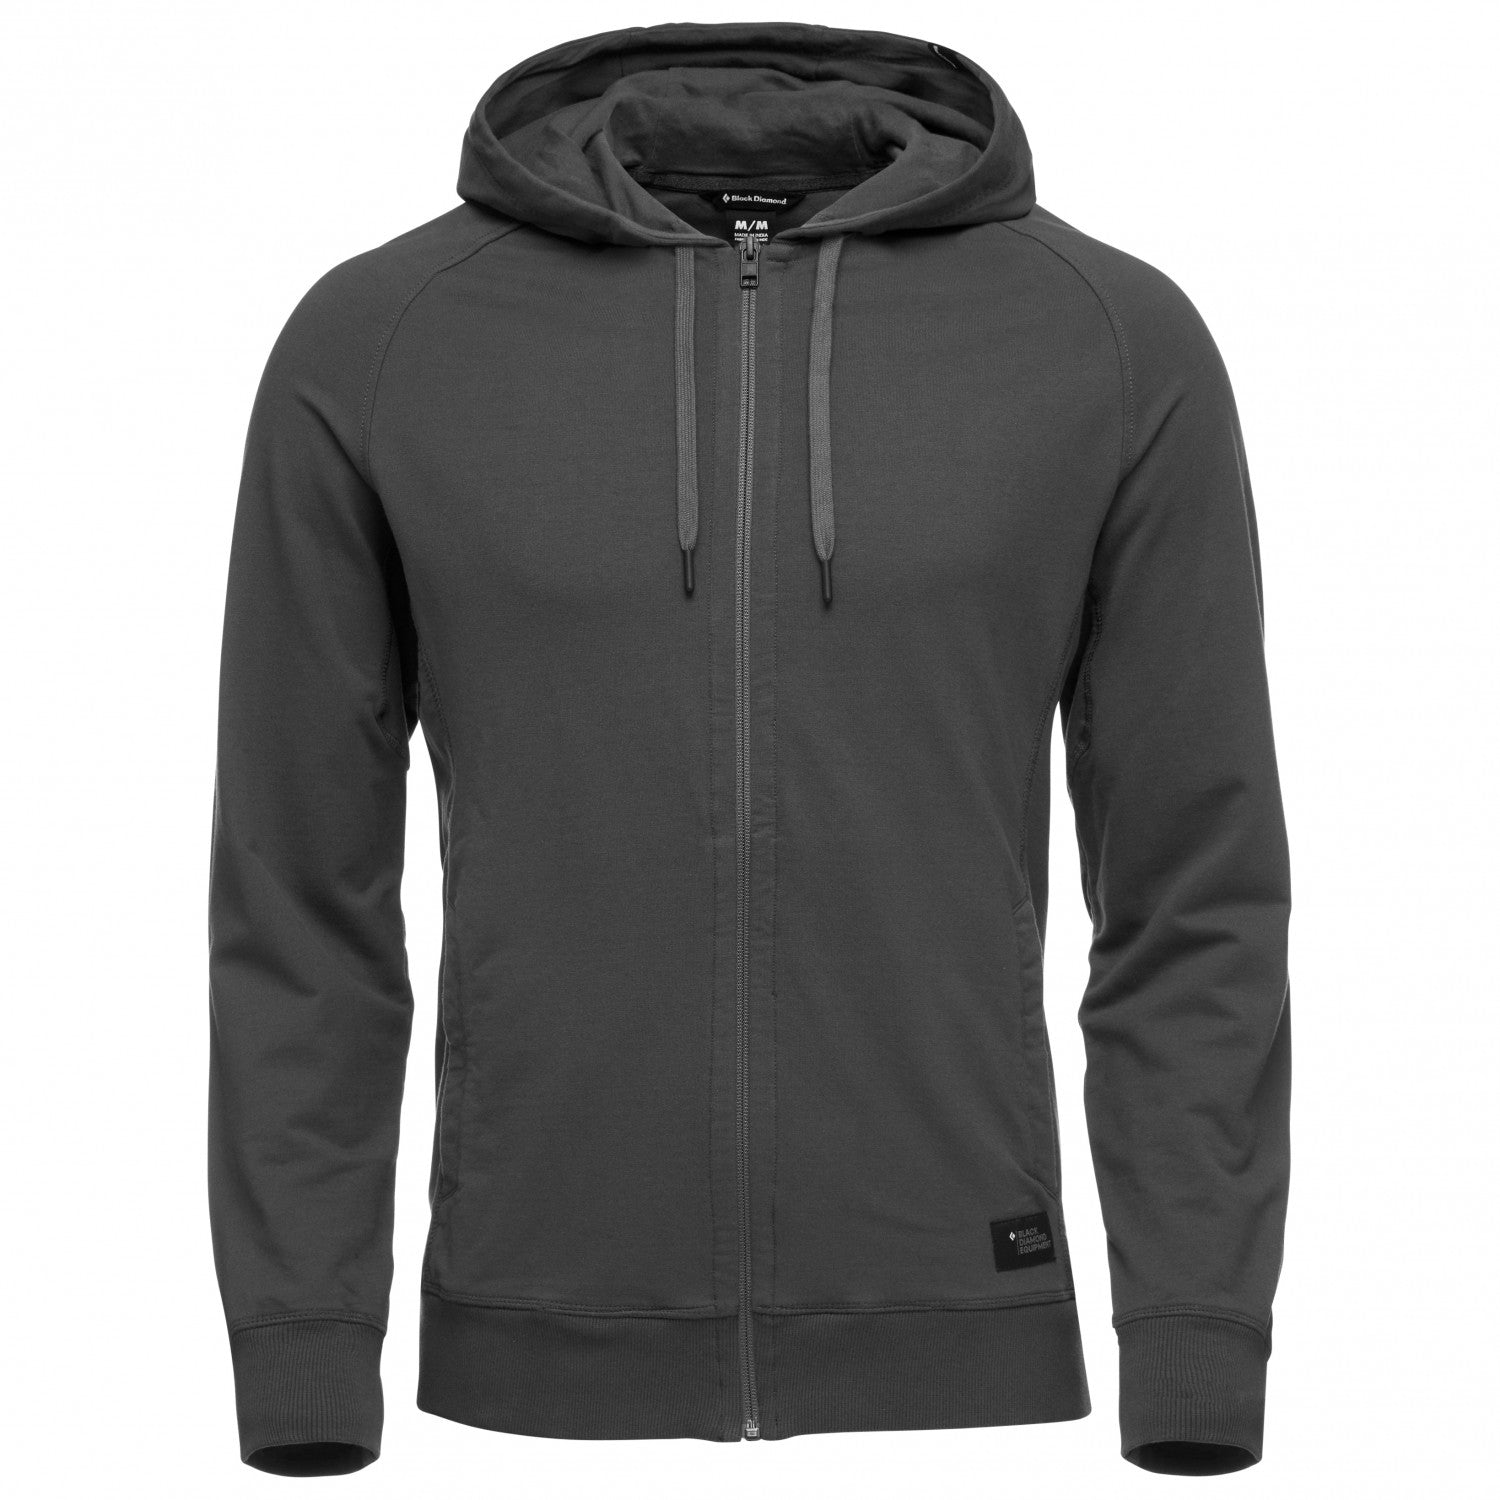 Black Diamond Basis Full Zip in dark grey anthracite